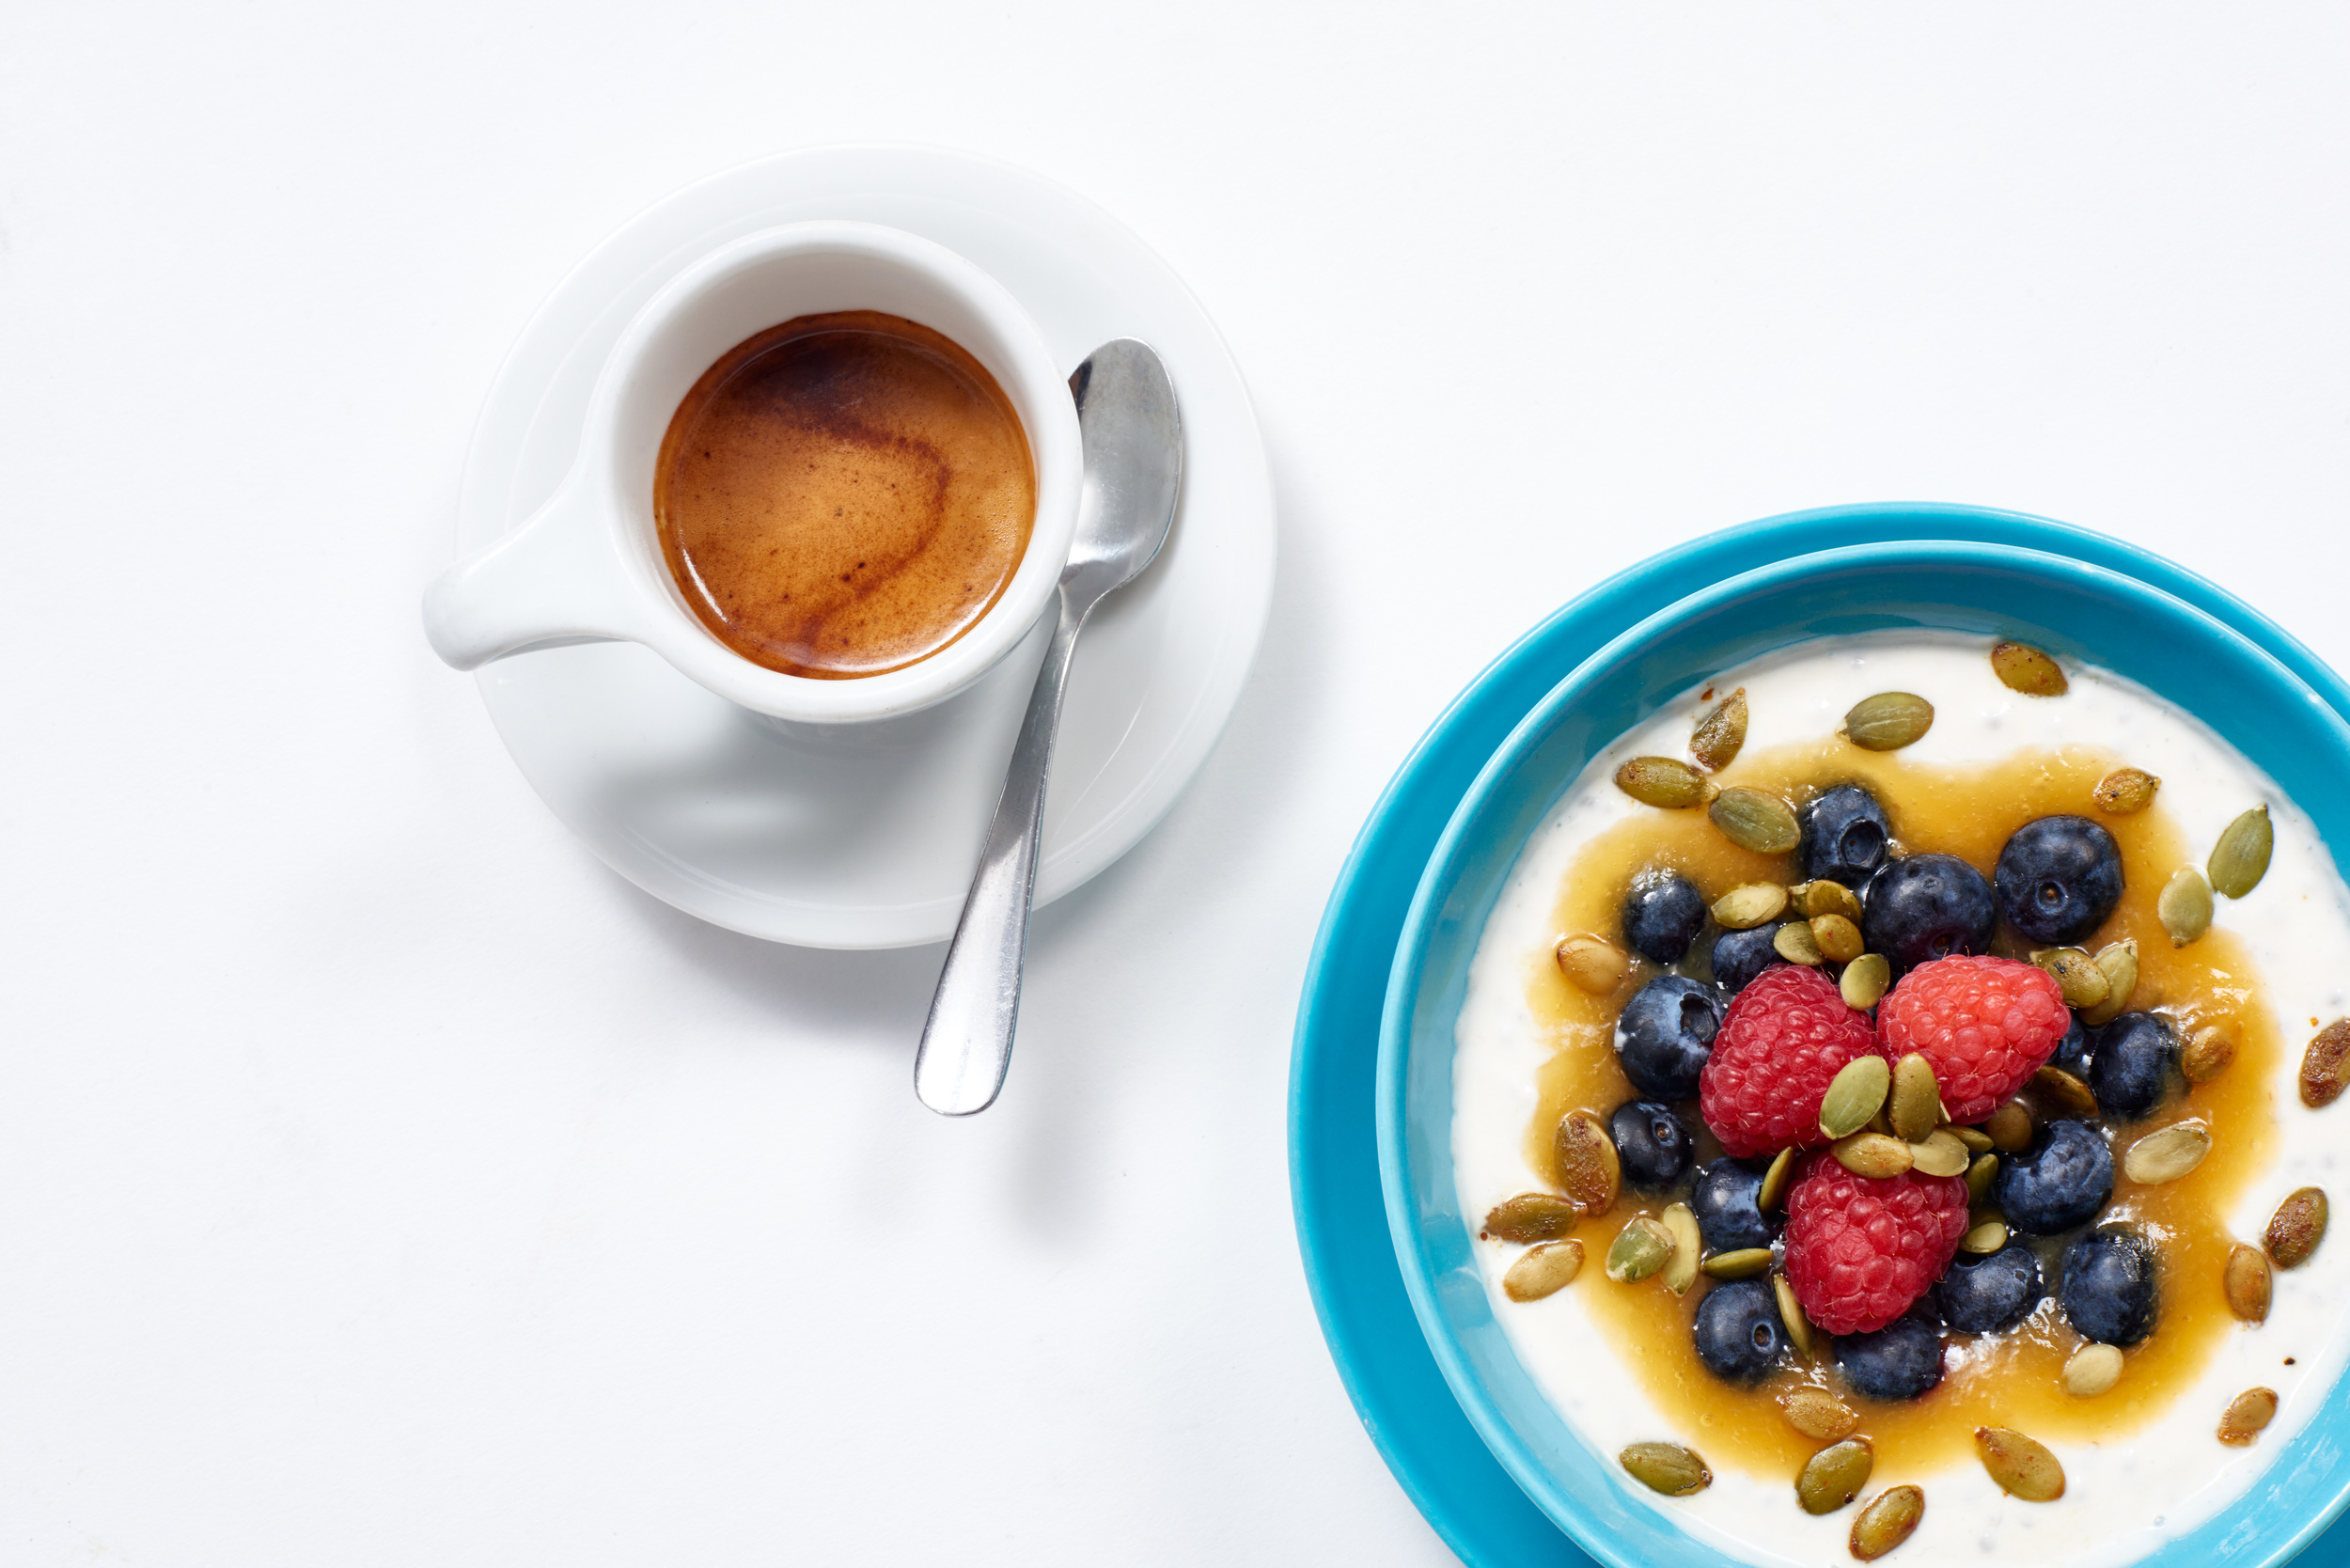 Intelligentsia espresso + Gather fruit yoghurt